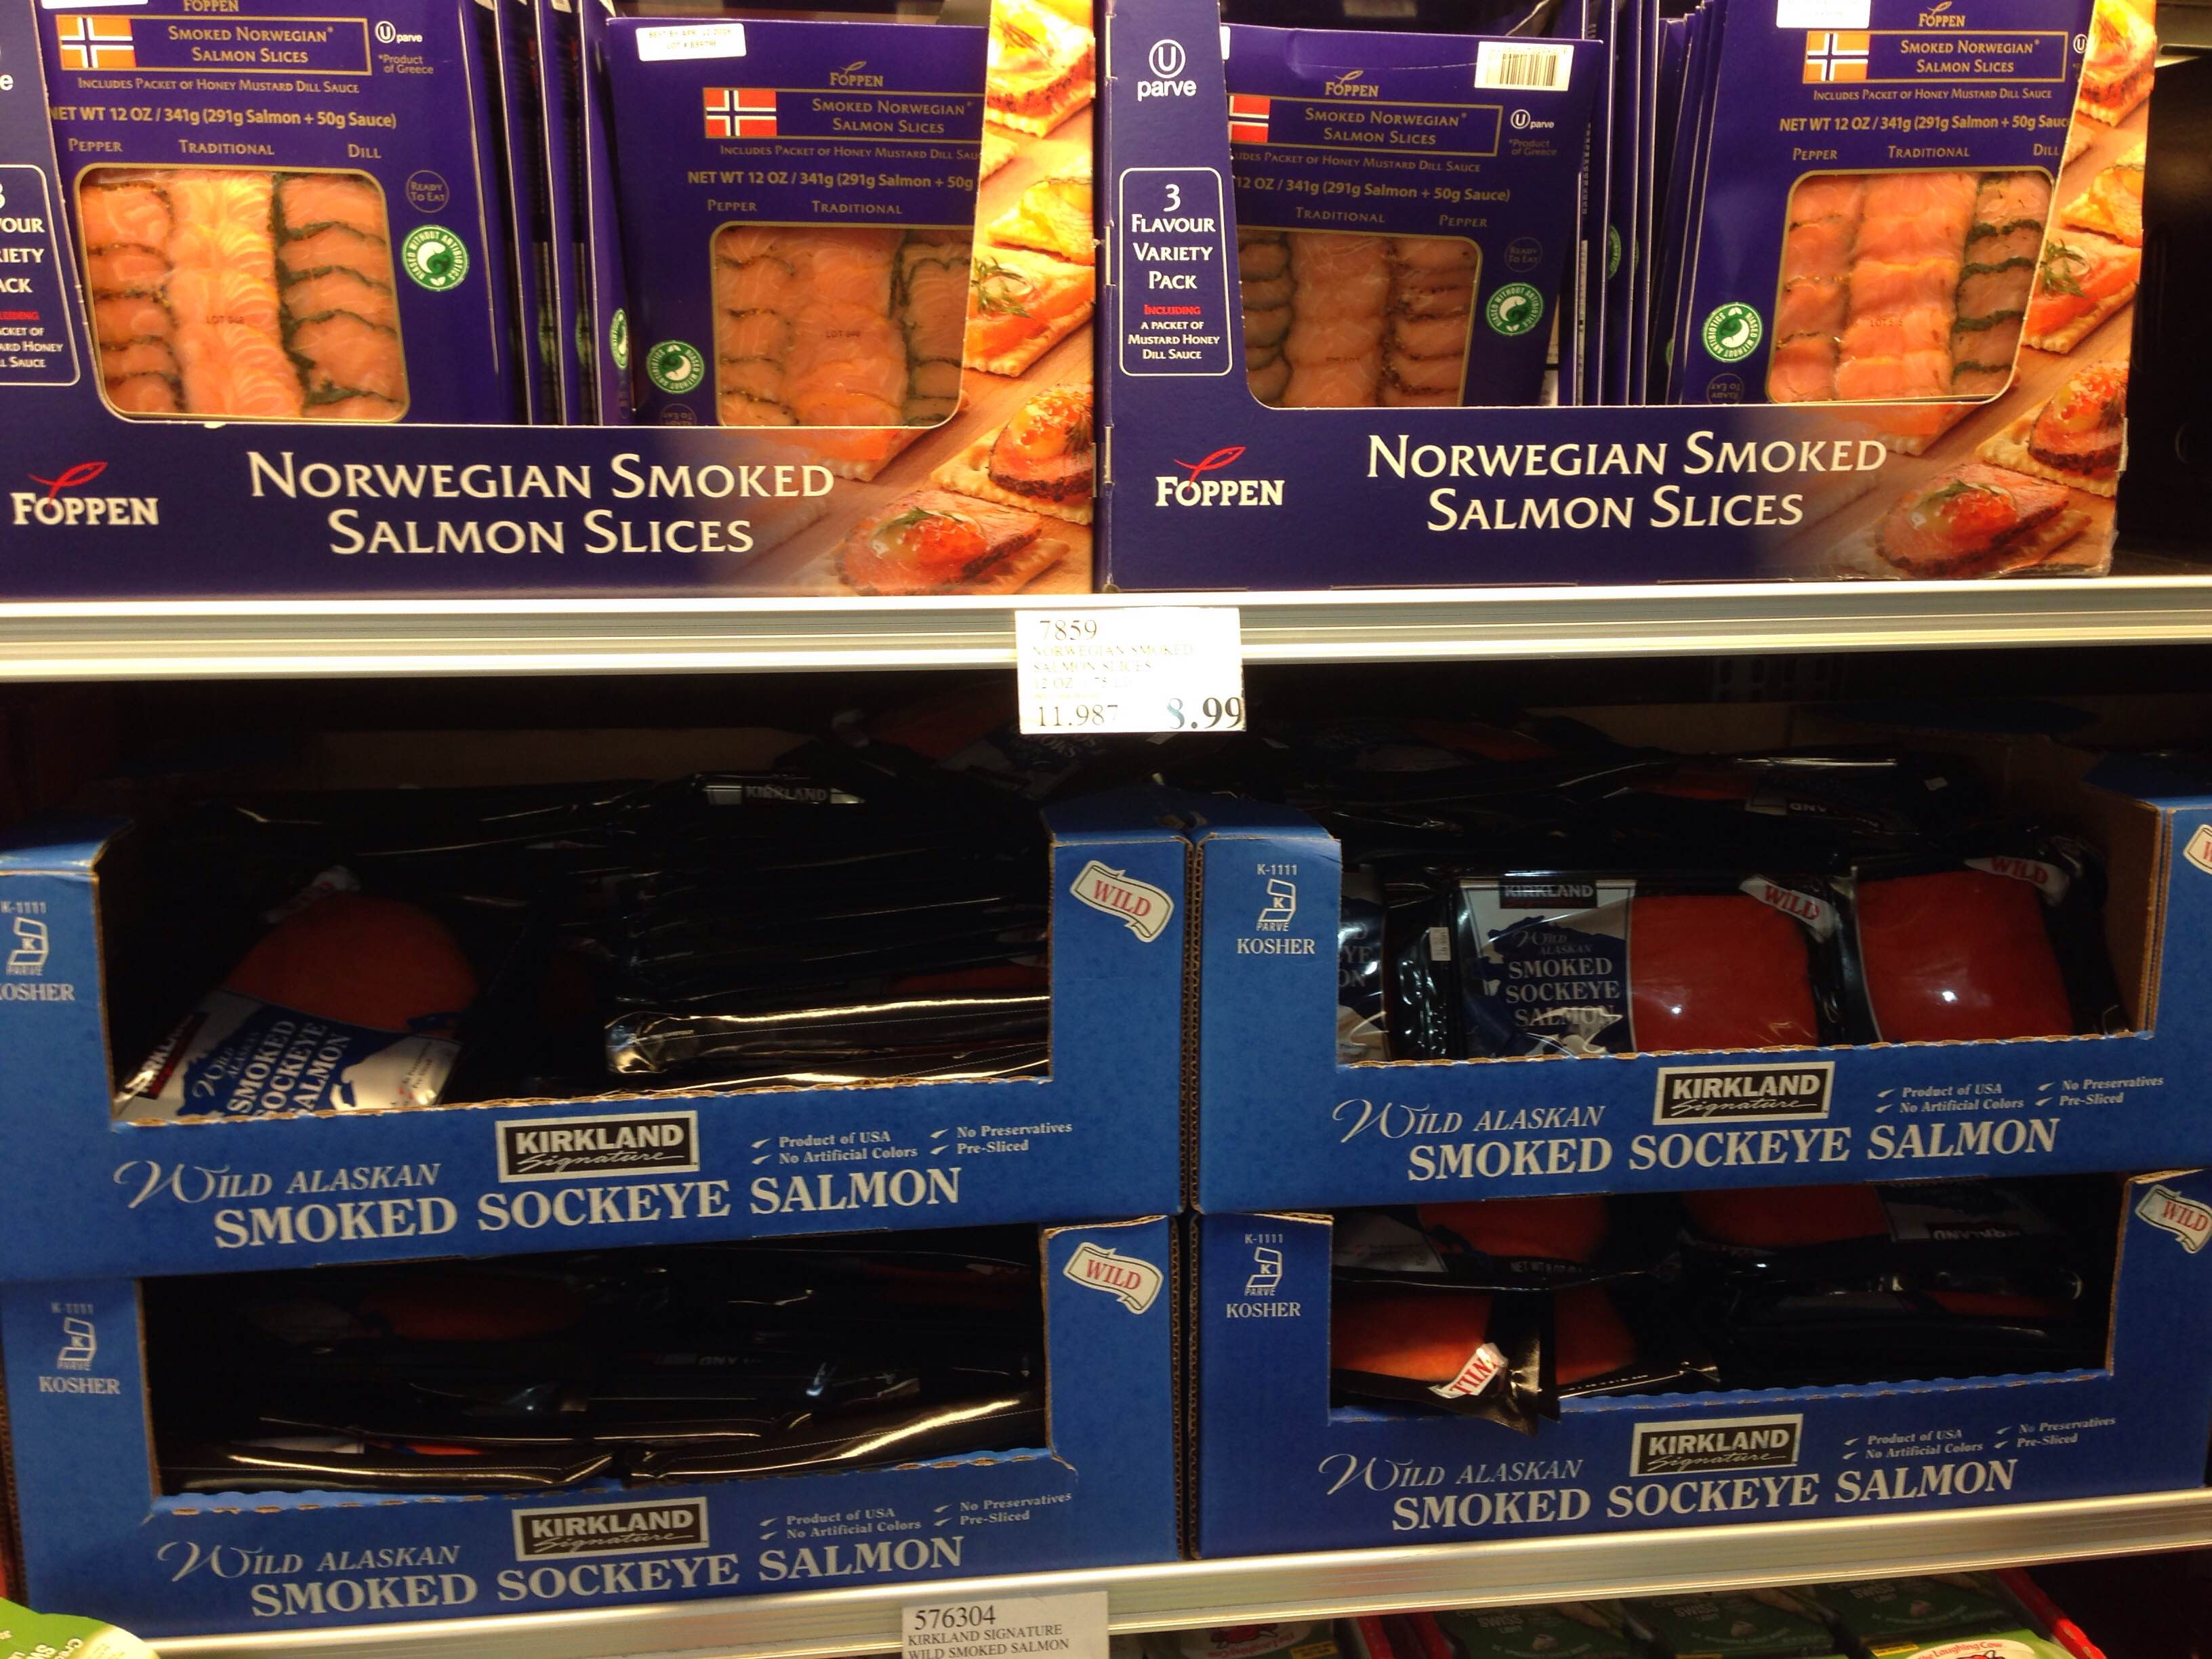 local costco to start carrying kosher foods beth malden additionally the bjs in medford has expressed interest in carrying kosher products to meet our needs and we hope to have positive updates on that for you